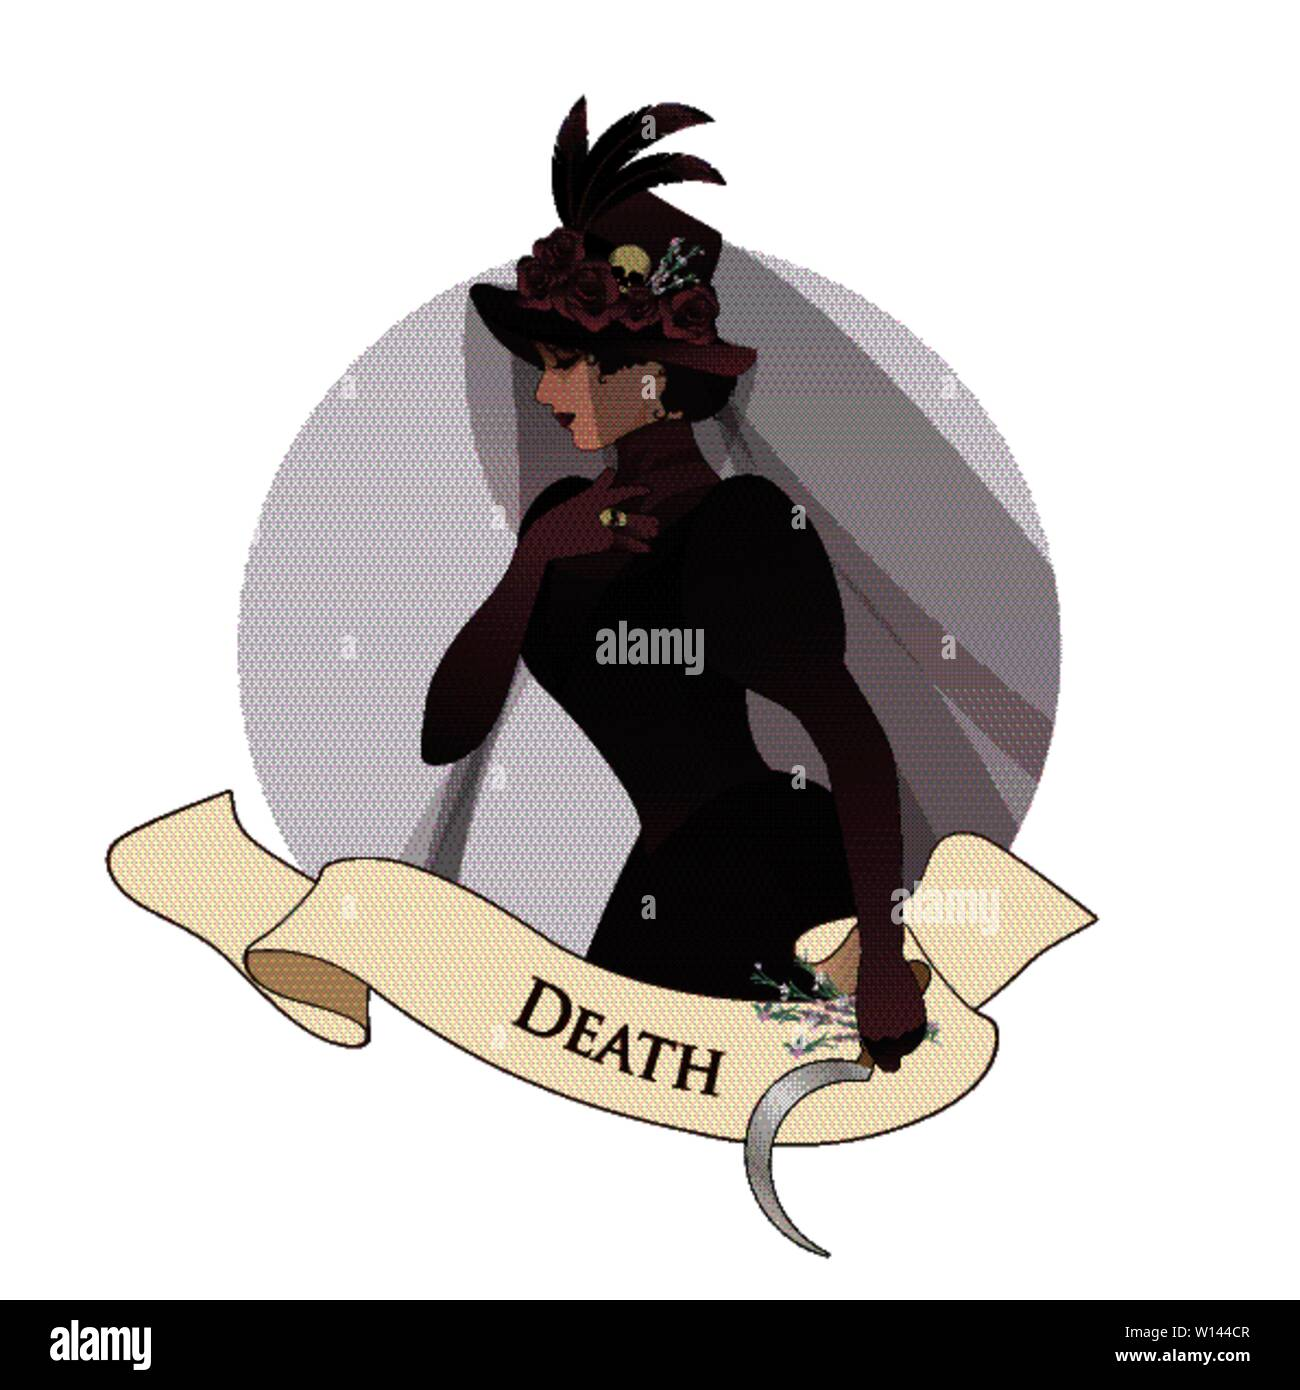 Major Arcana Emblem Tarot Card. Death. Woman dressed in veils and ancient widow clothes carrying a sickle and a sprig of flowers in one hand. Hat deco - Stock Image